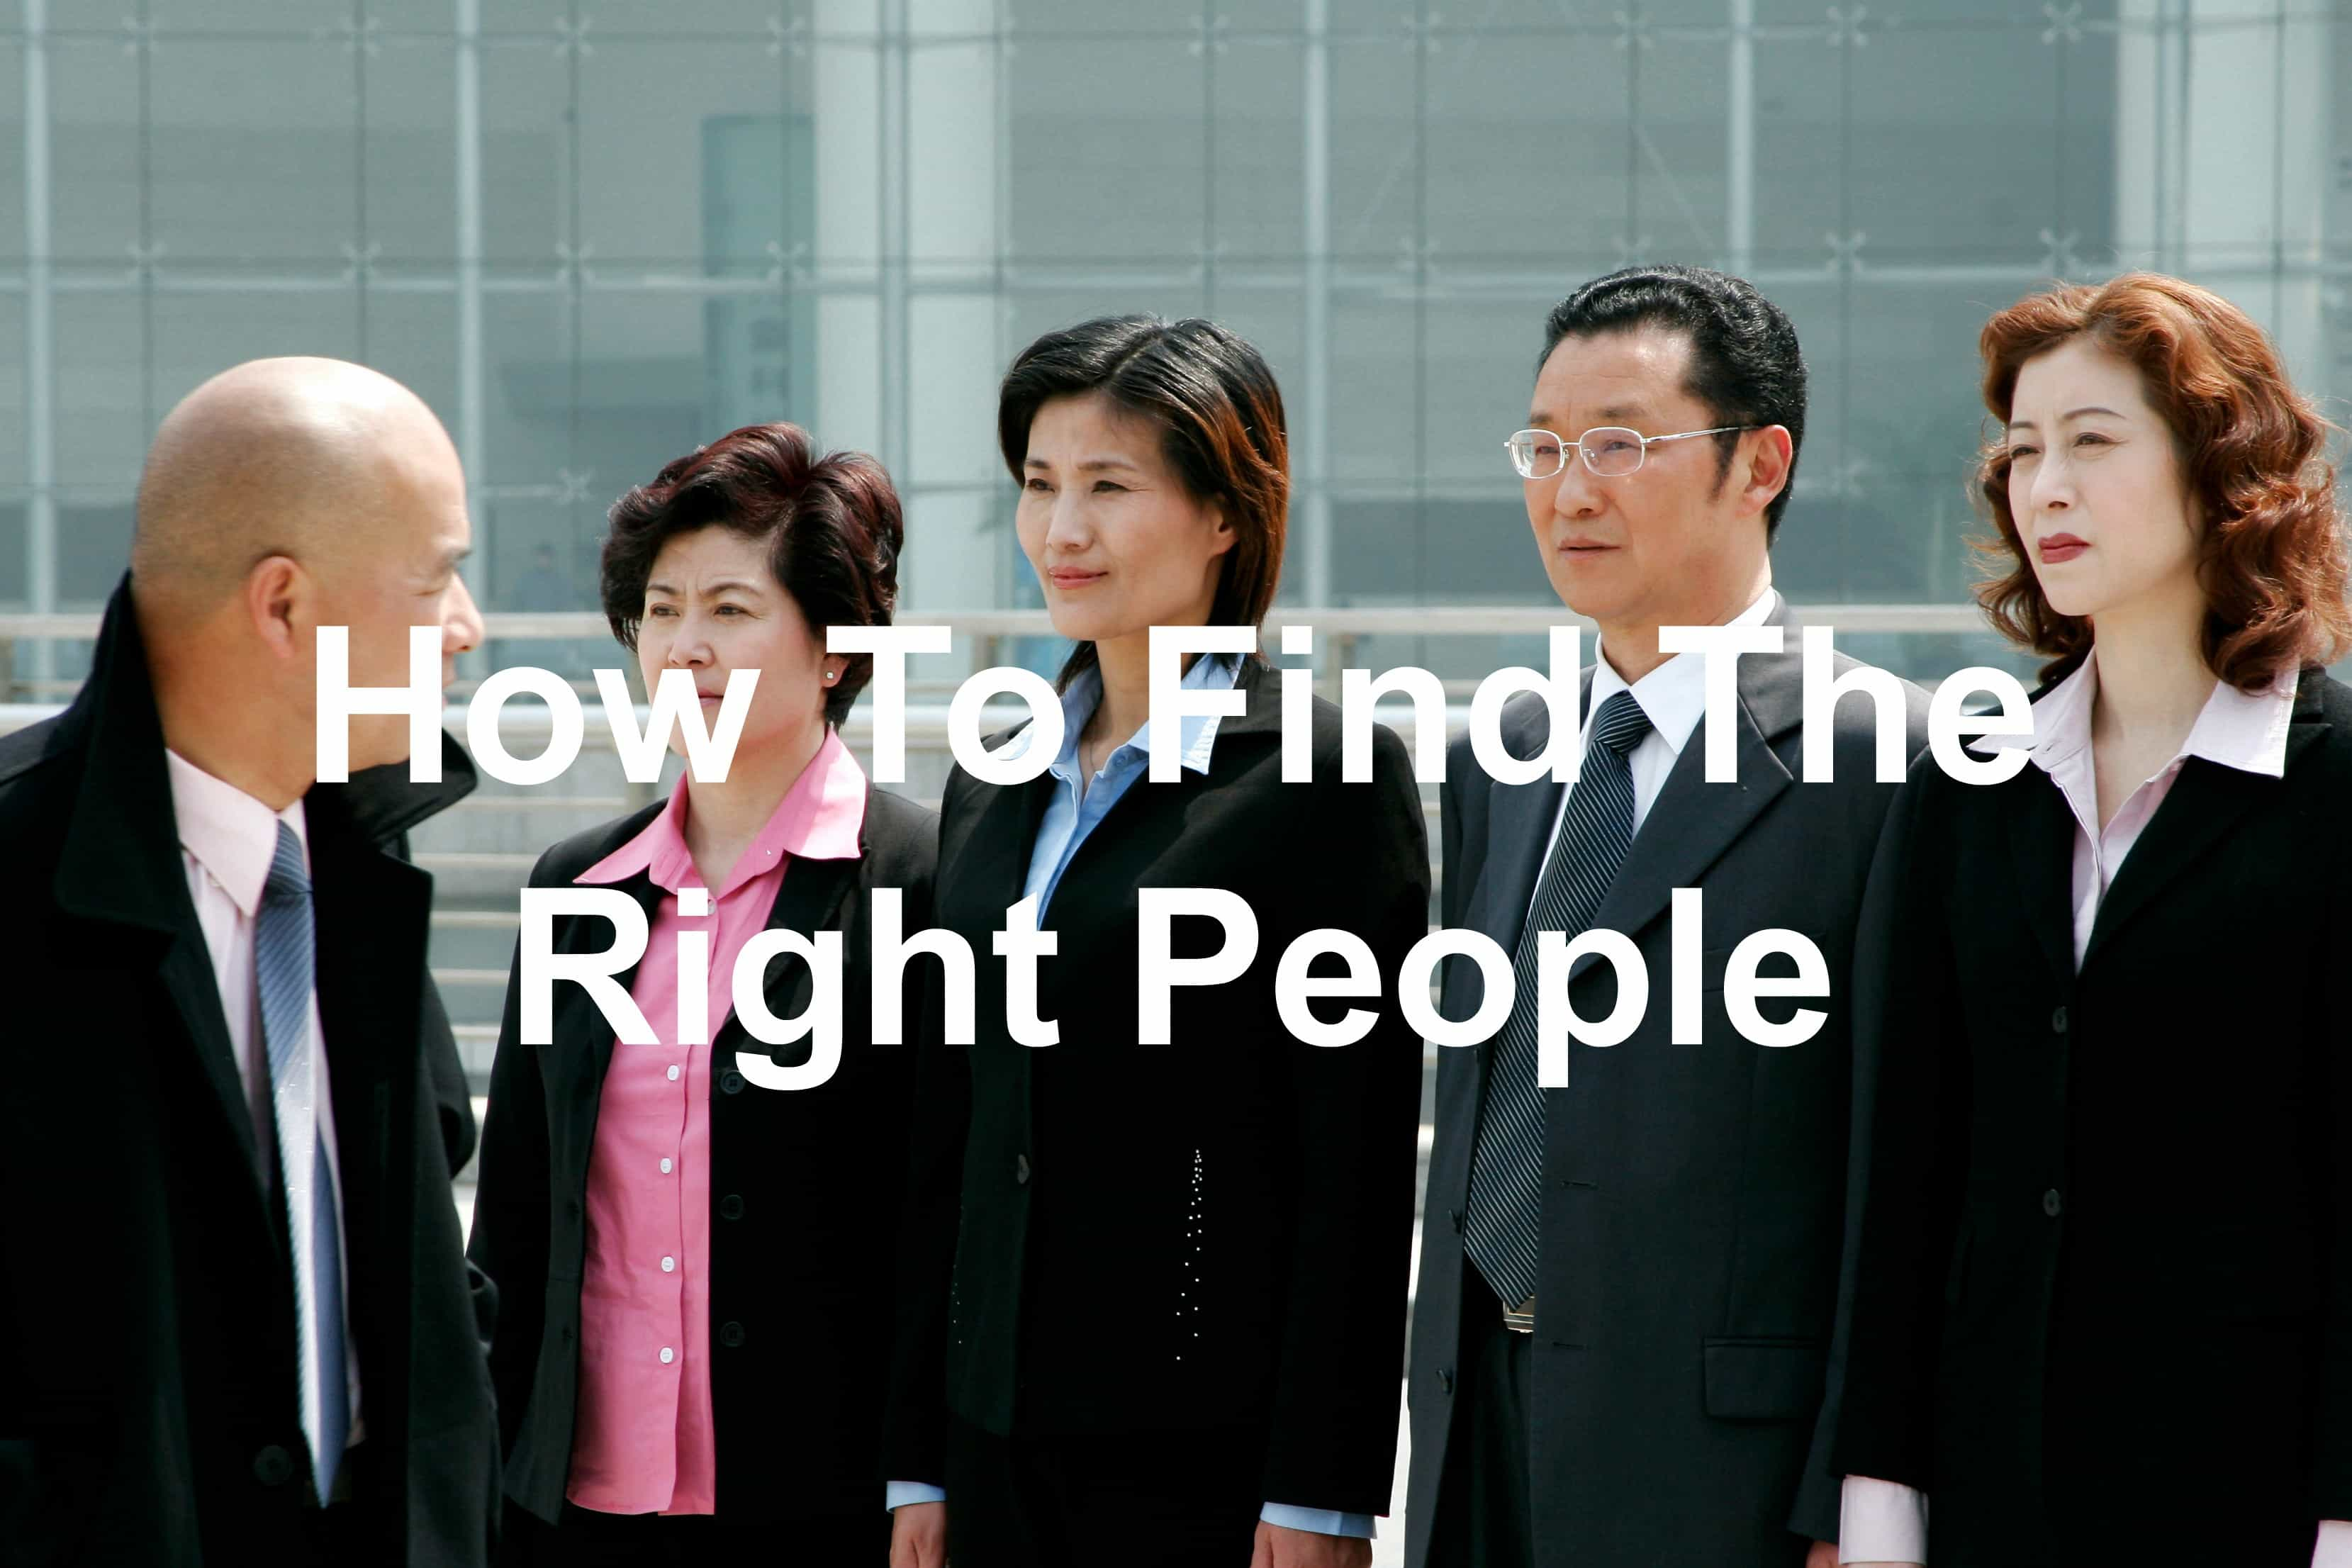 Finding the right people is critical for business success